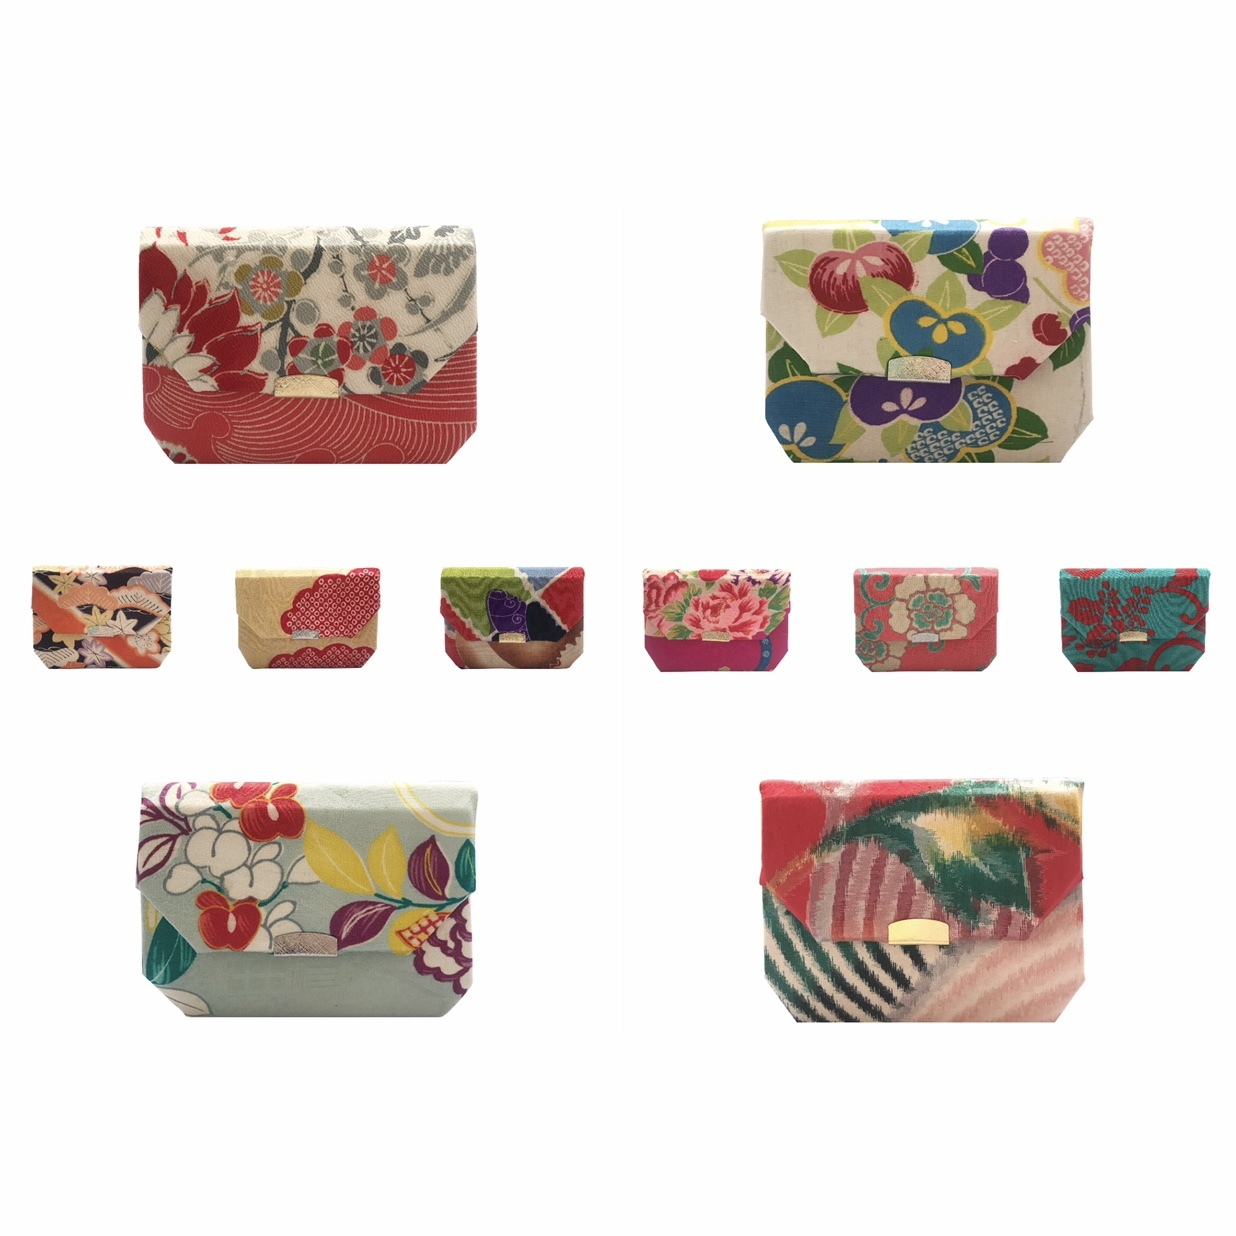 Popping Wallet (Packet Size)